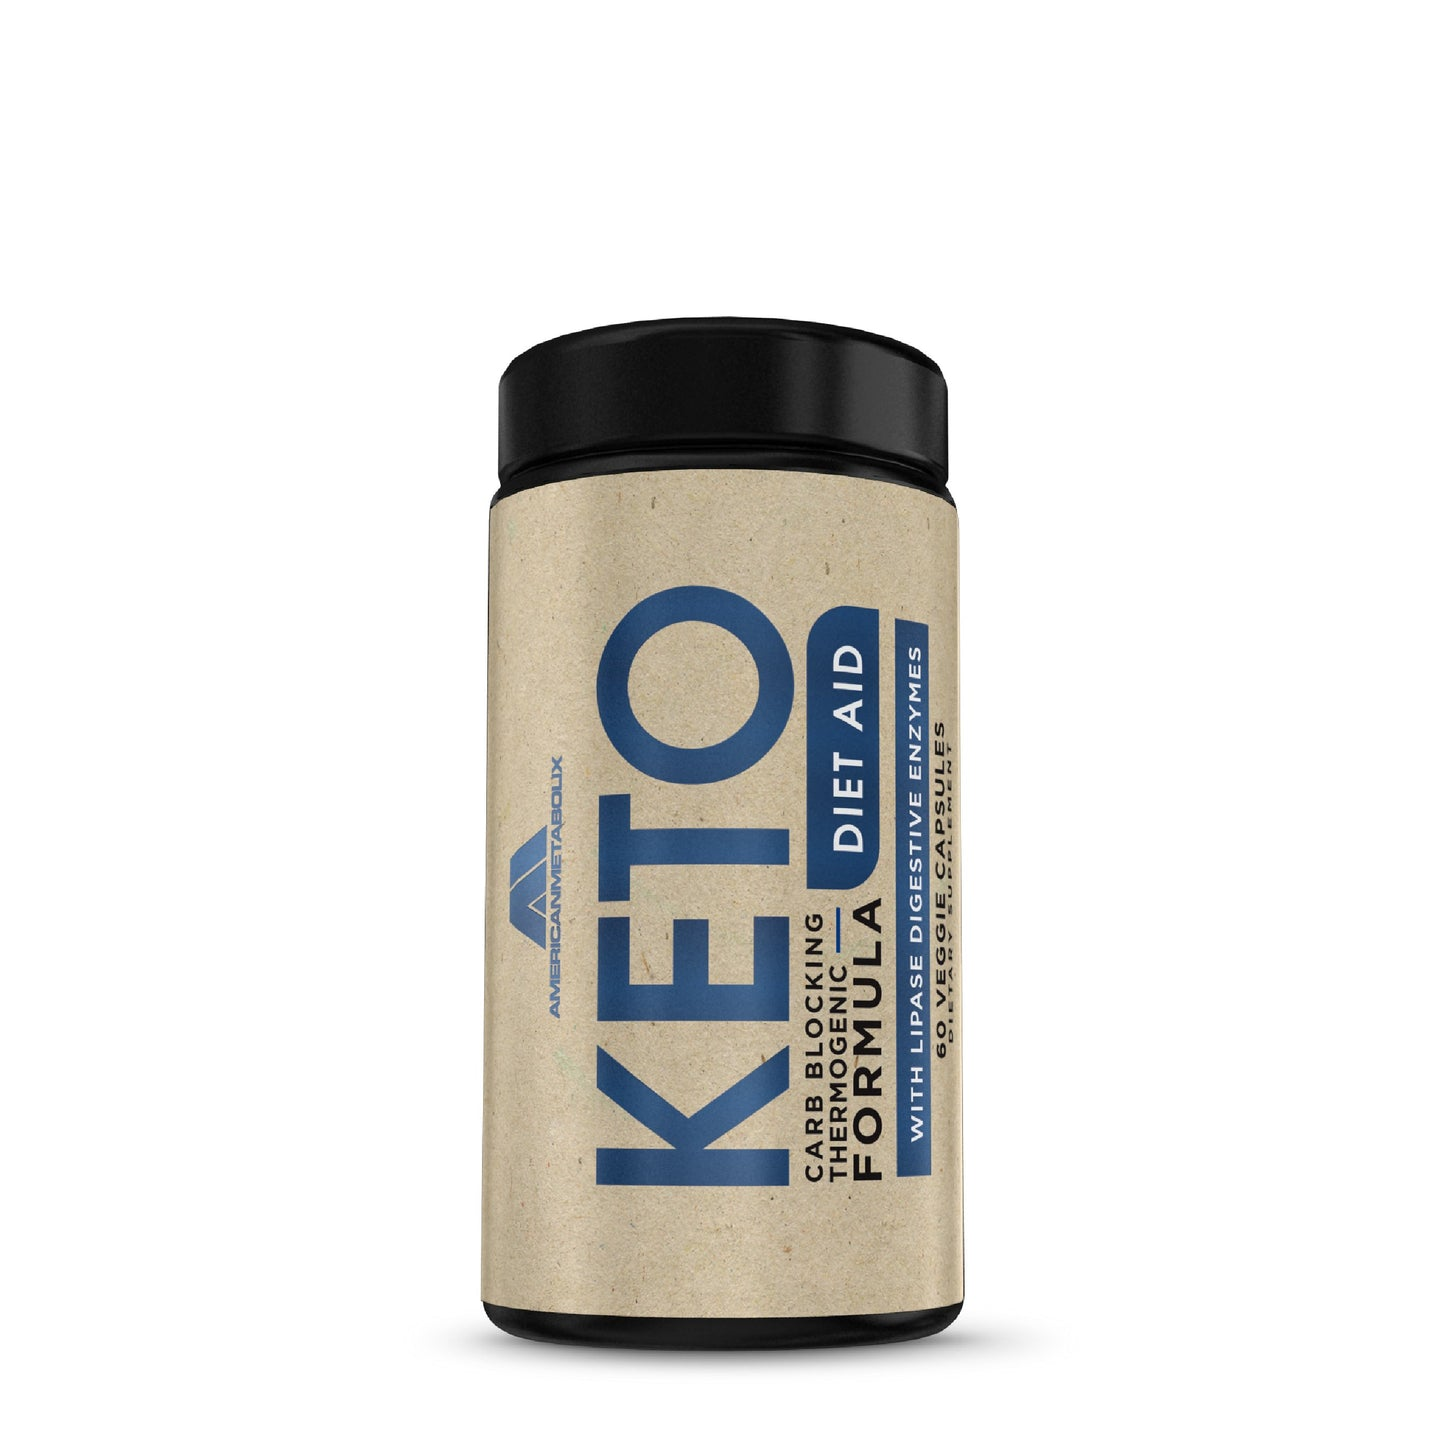 Keto Diet Aid w Digestive Support